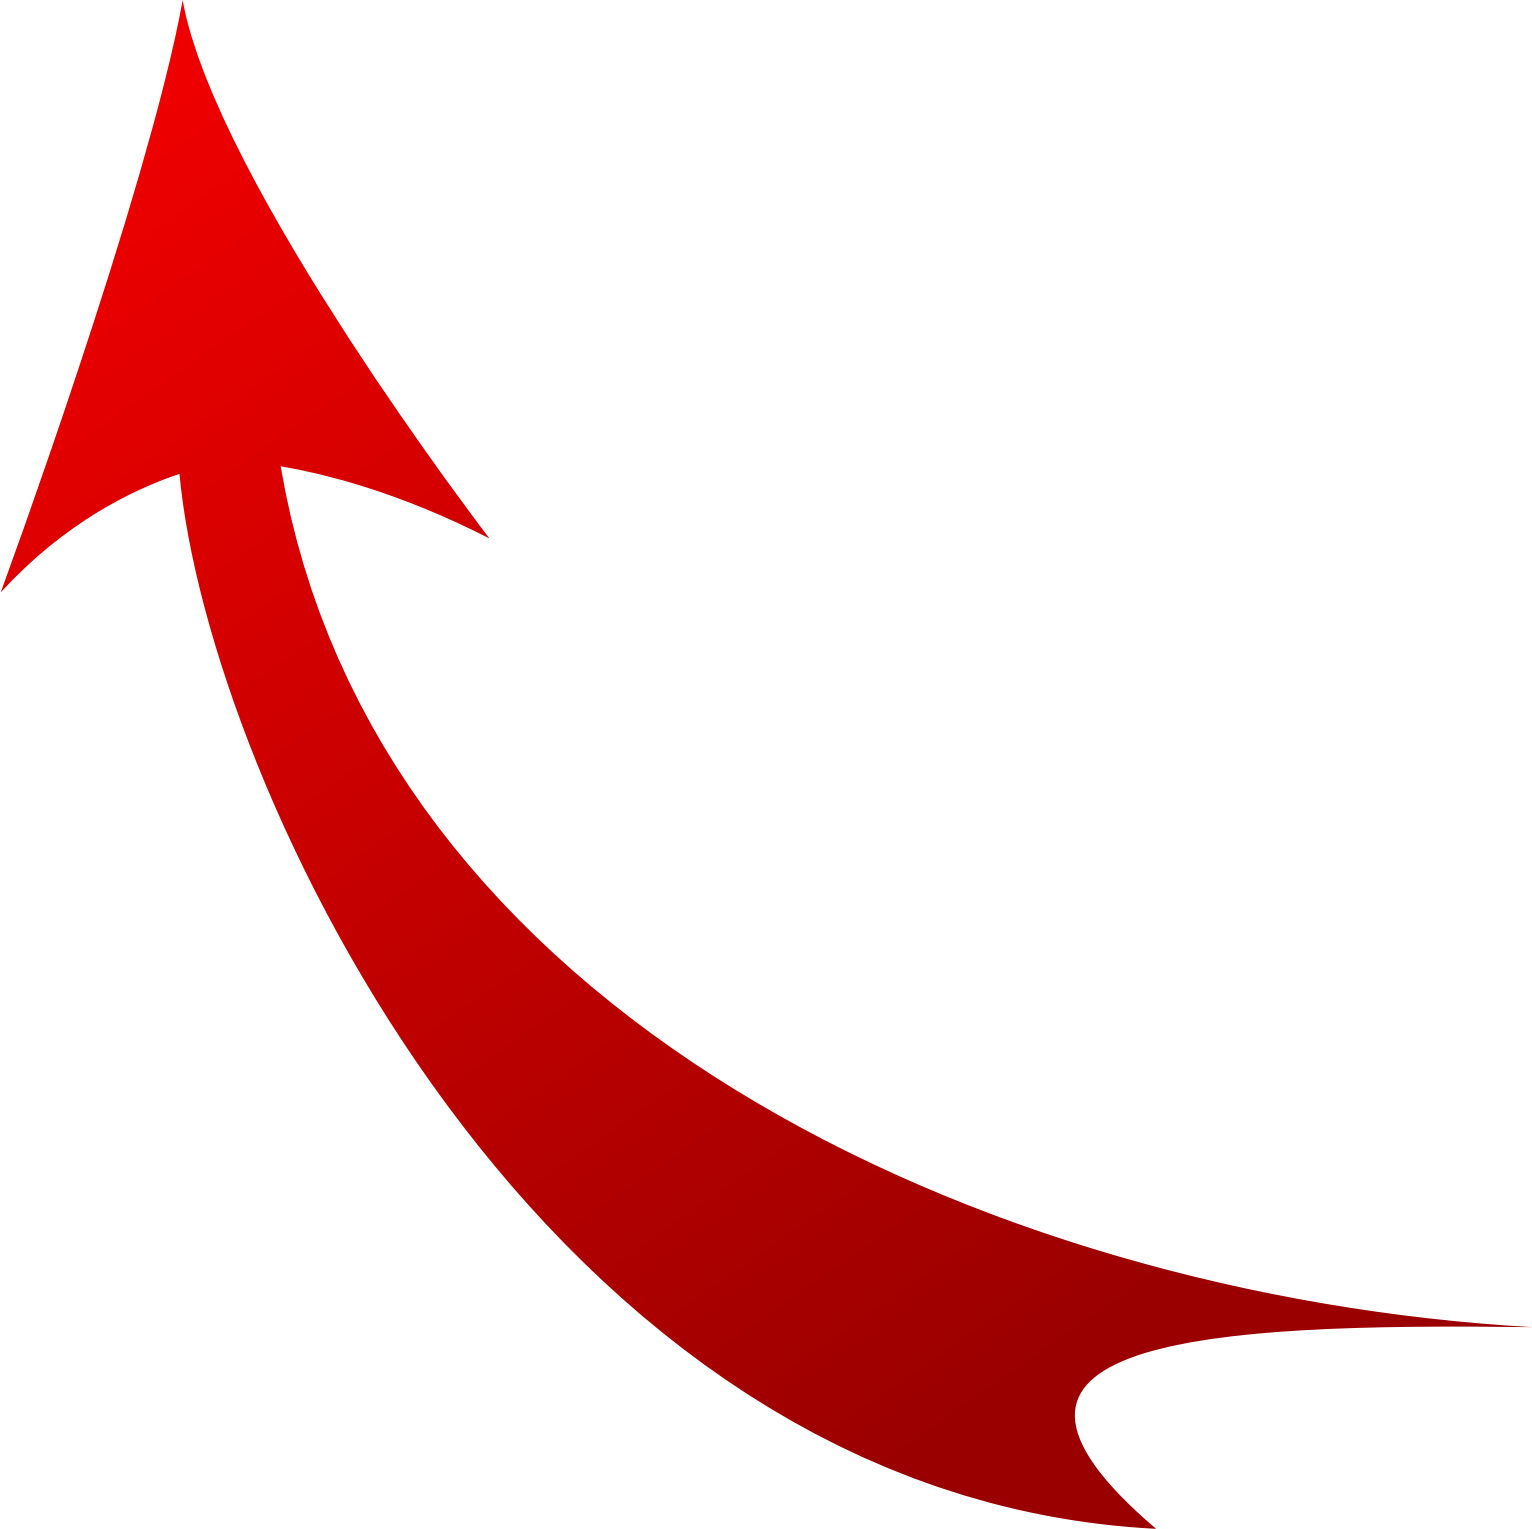 Red curved arrow left clipart vector library download Curved Arrow Clipart - Clipart Kid vector library download